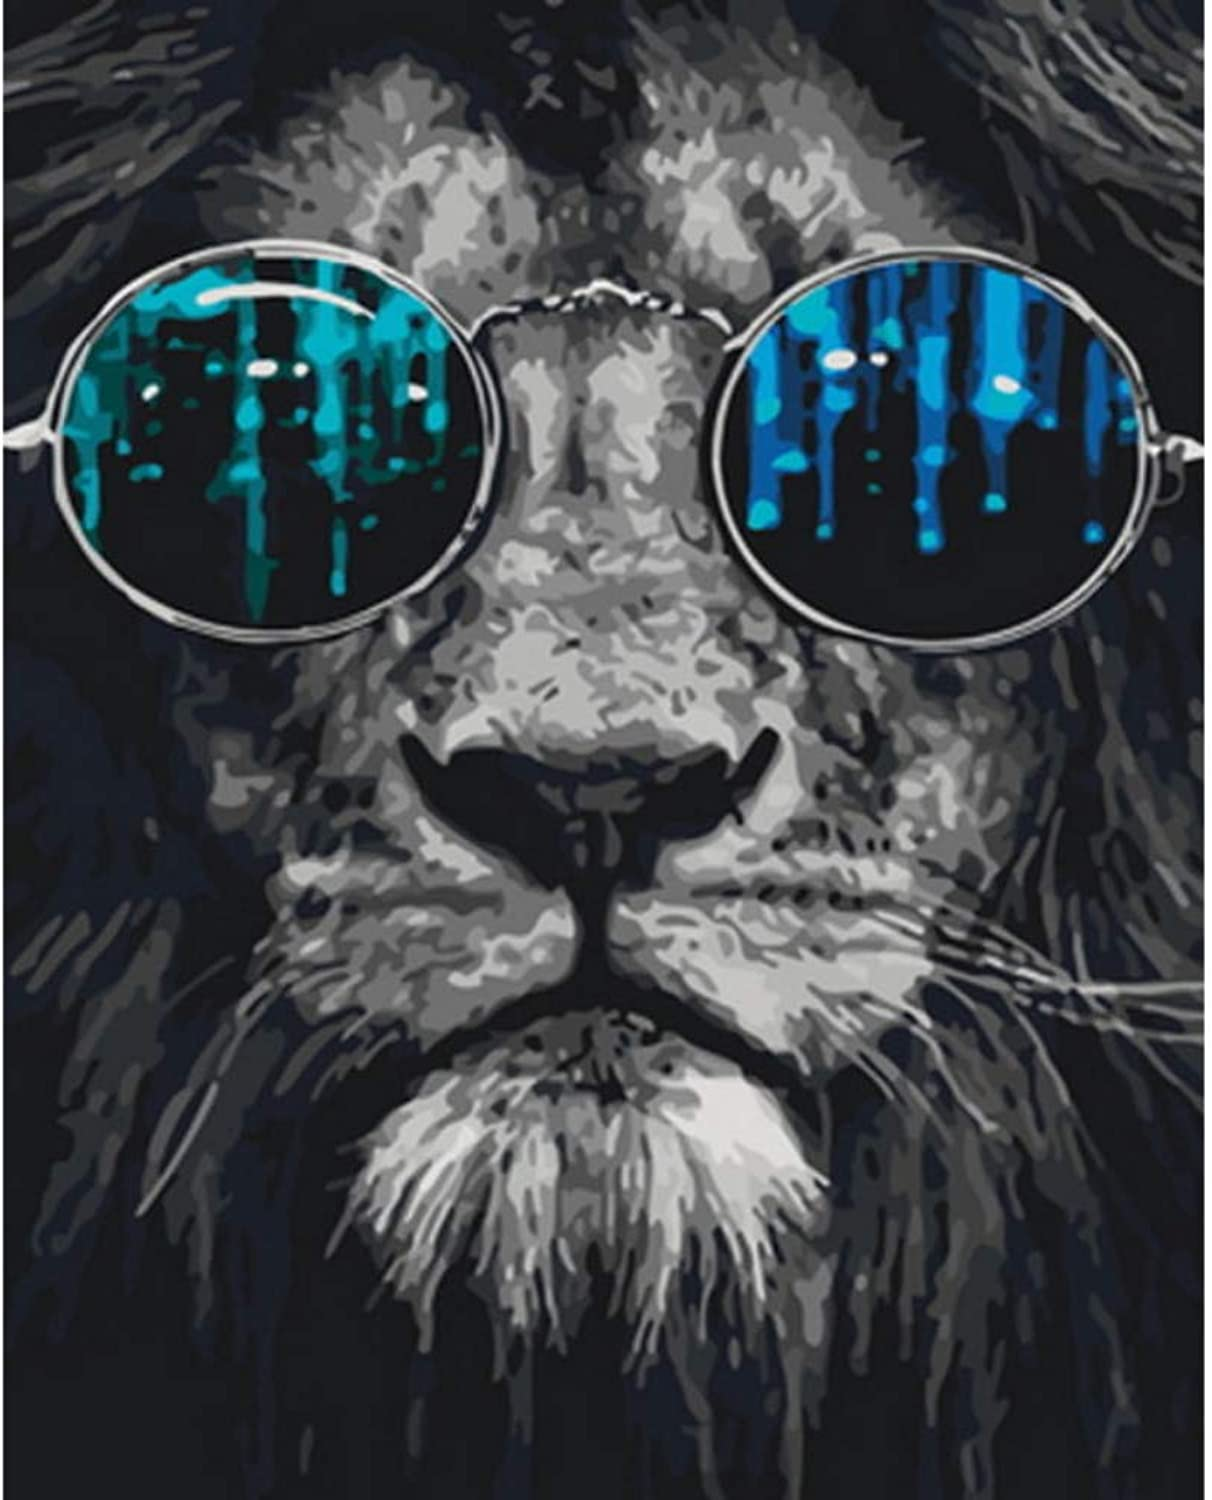 Painting by numbers paint by numbers for home decor PBN for living room lion with glasses 80x100cm